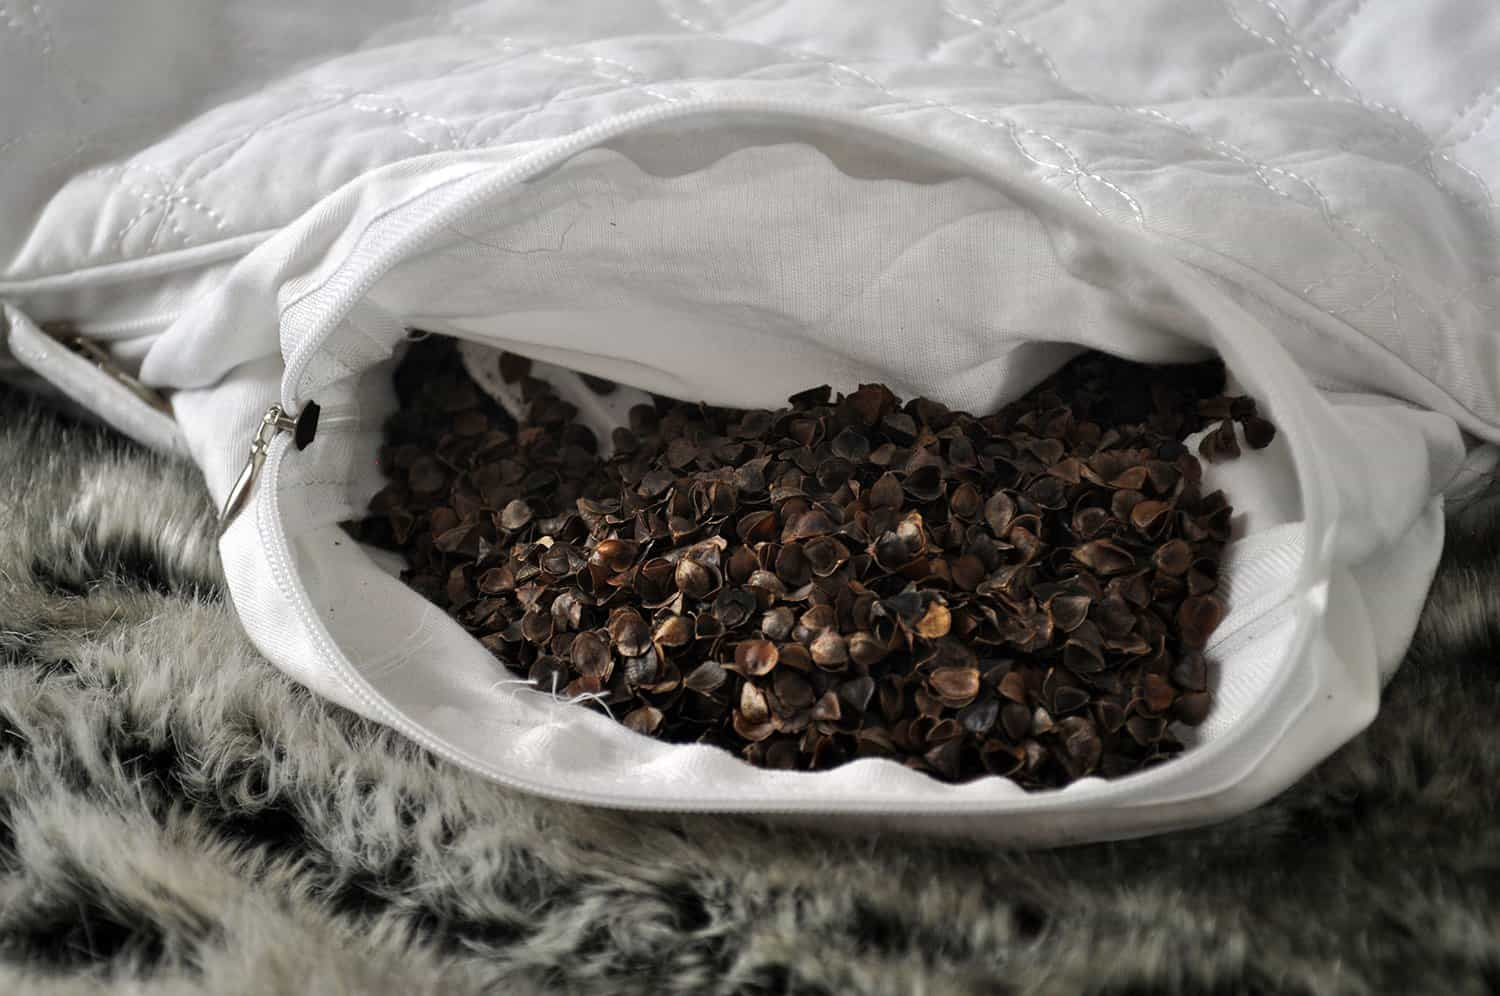 Qbedding Buckwheat Pillow Review Sleepopolis